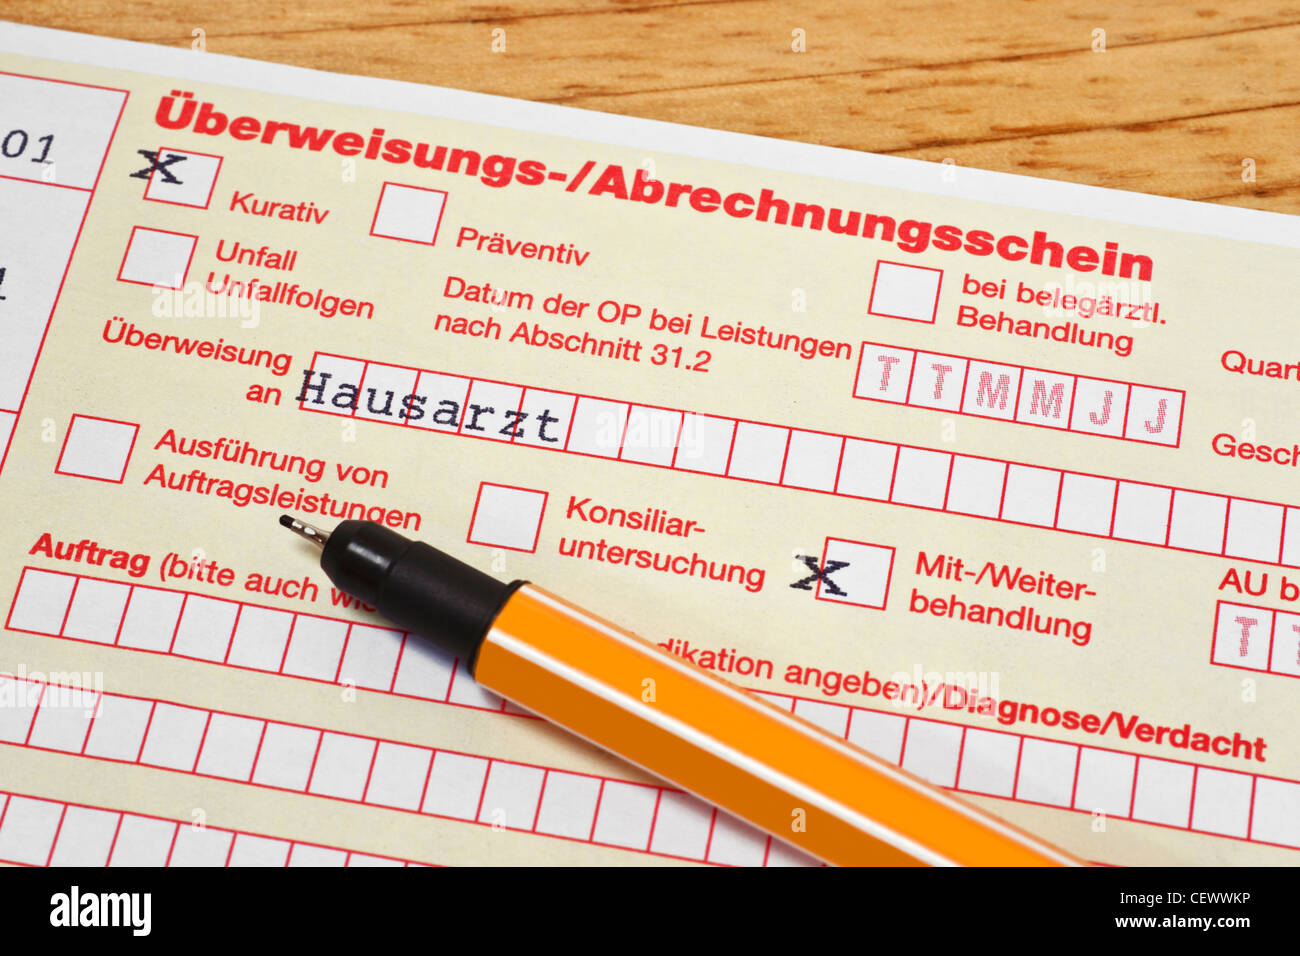 Detail photo of a German letter of referral to the general practitioner, a pen is alongside - Stock Image